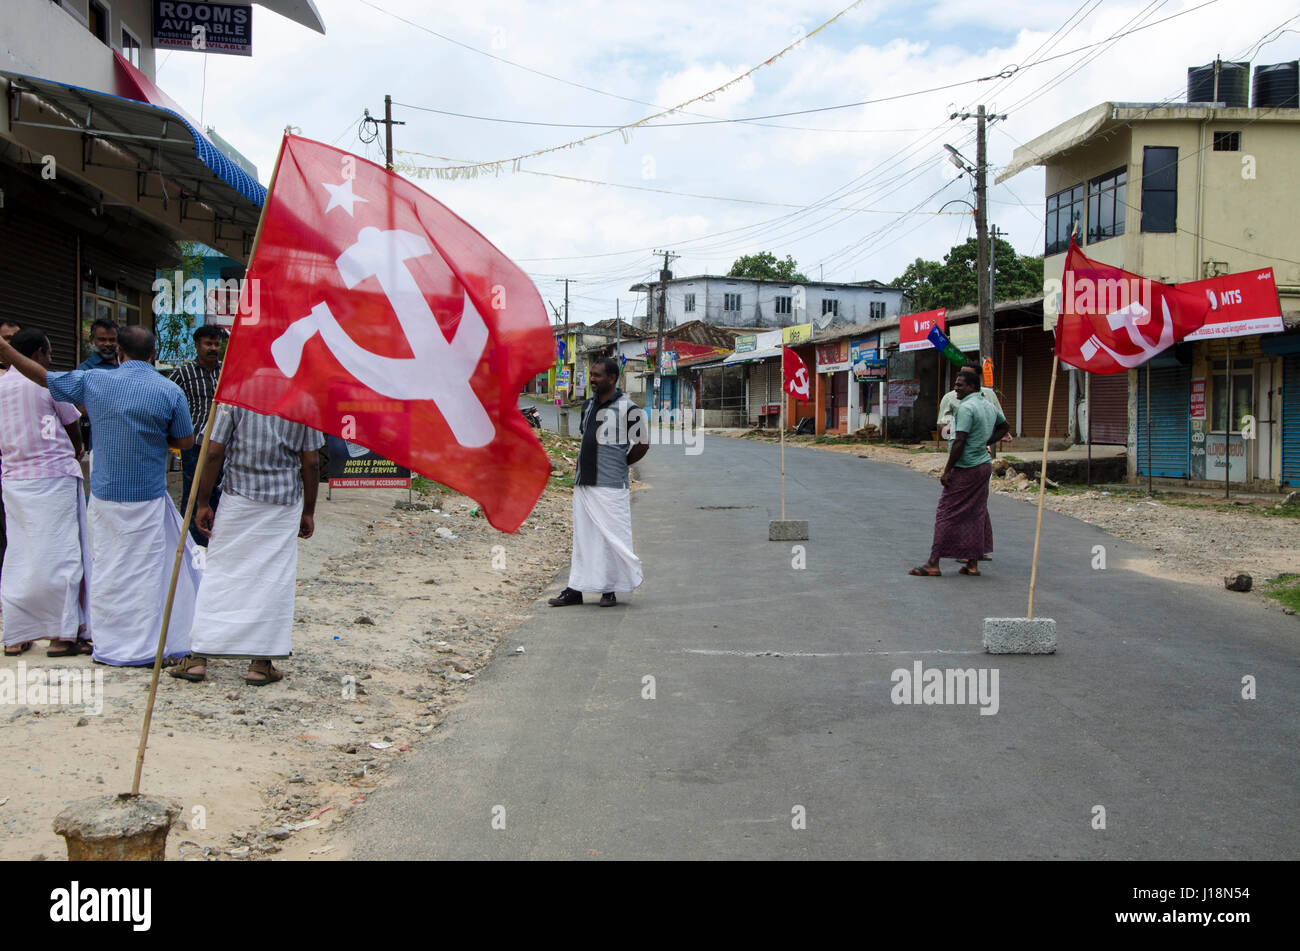 Communist party workers blocked the road, vagamon, kerala, india, asia - Stock Image